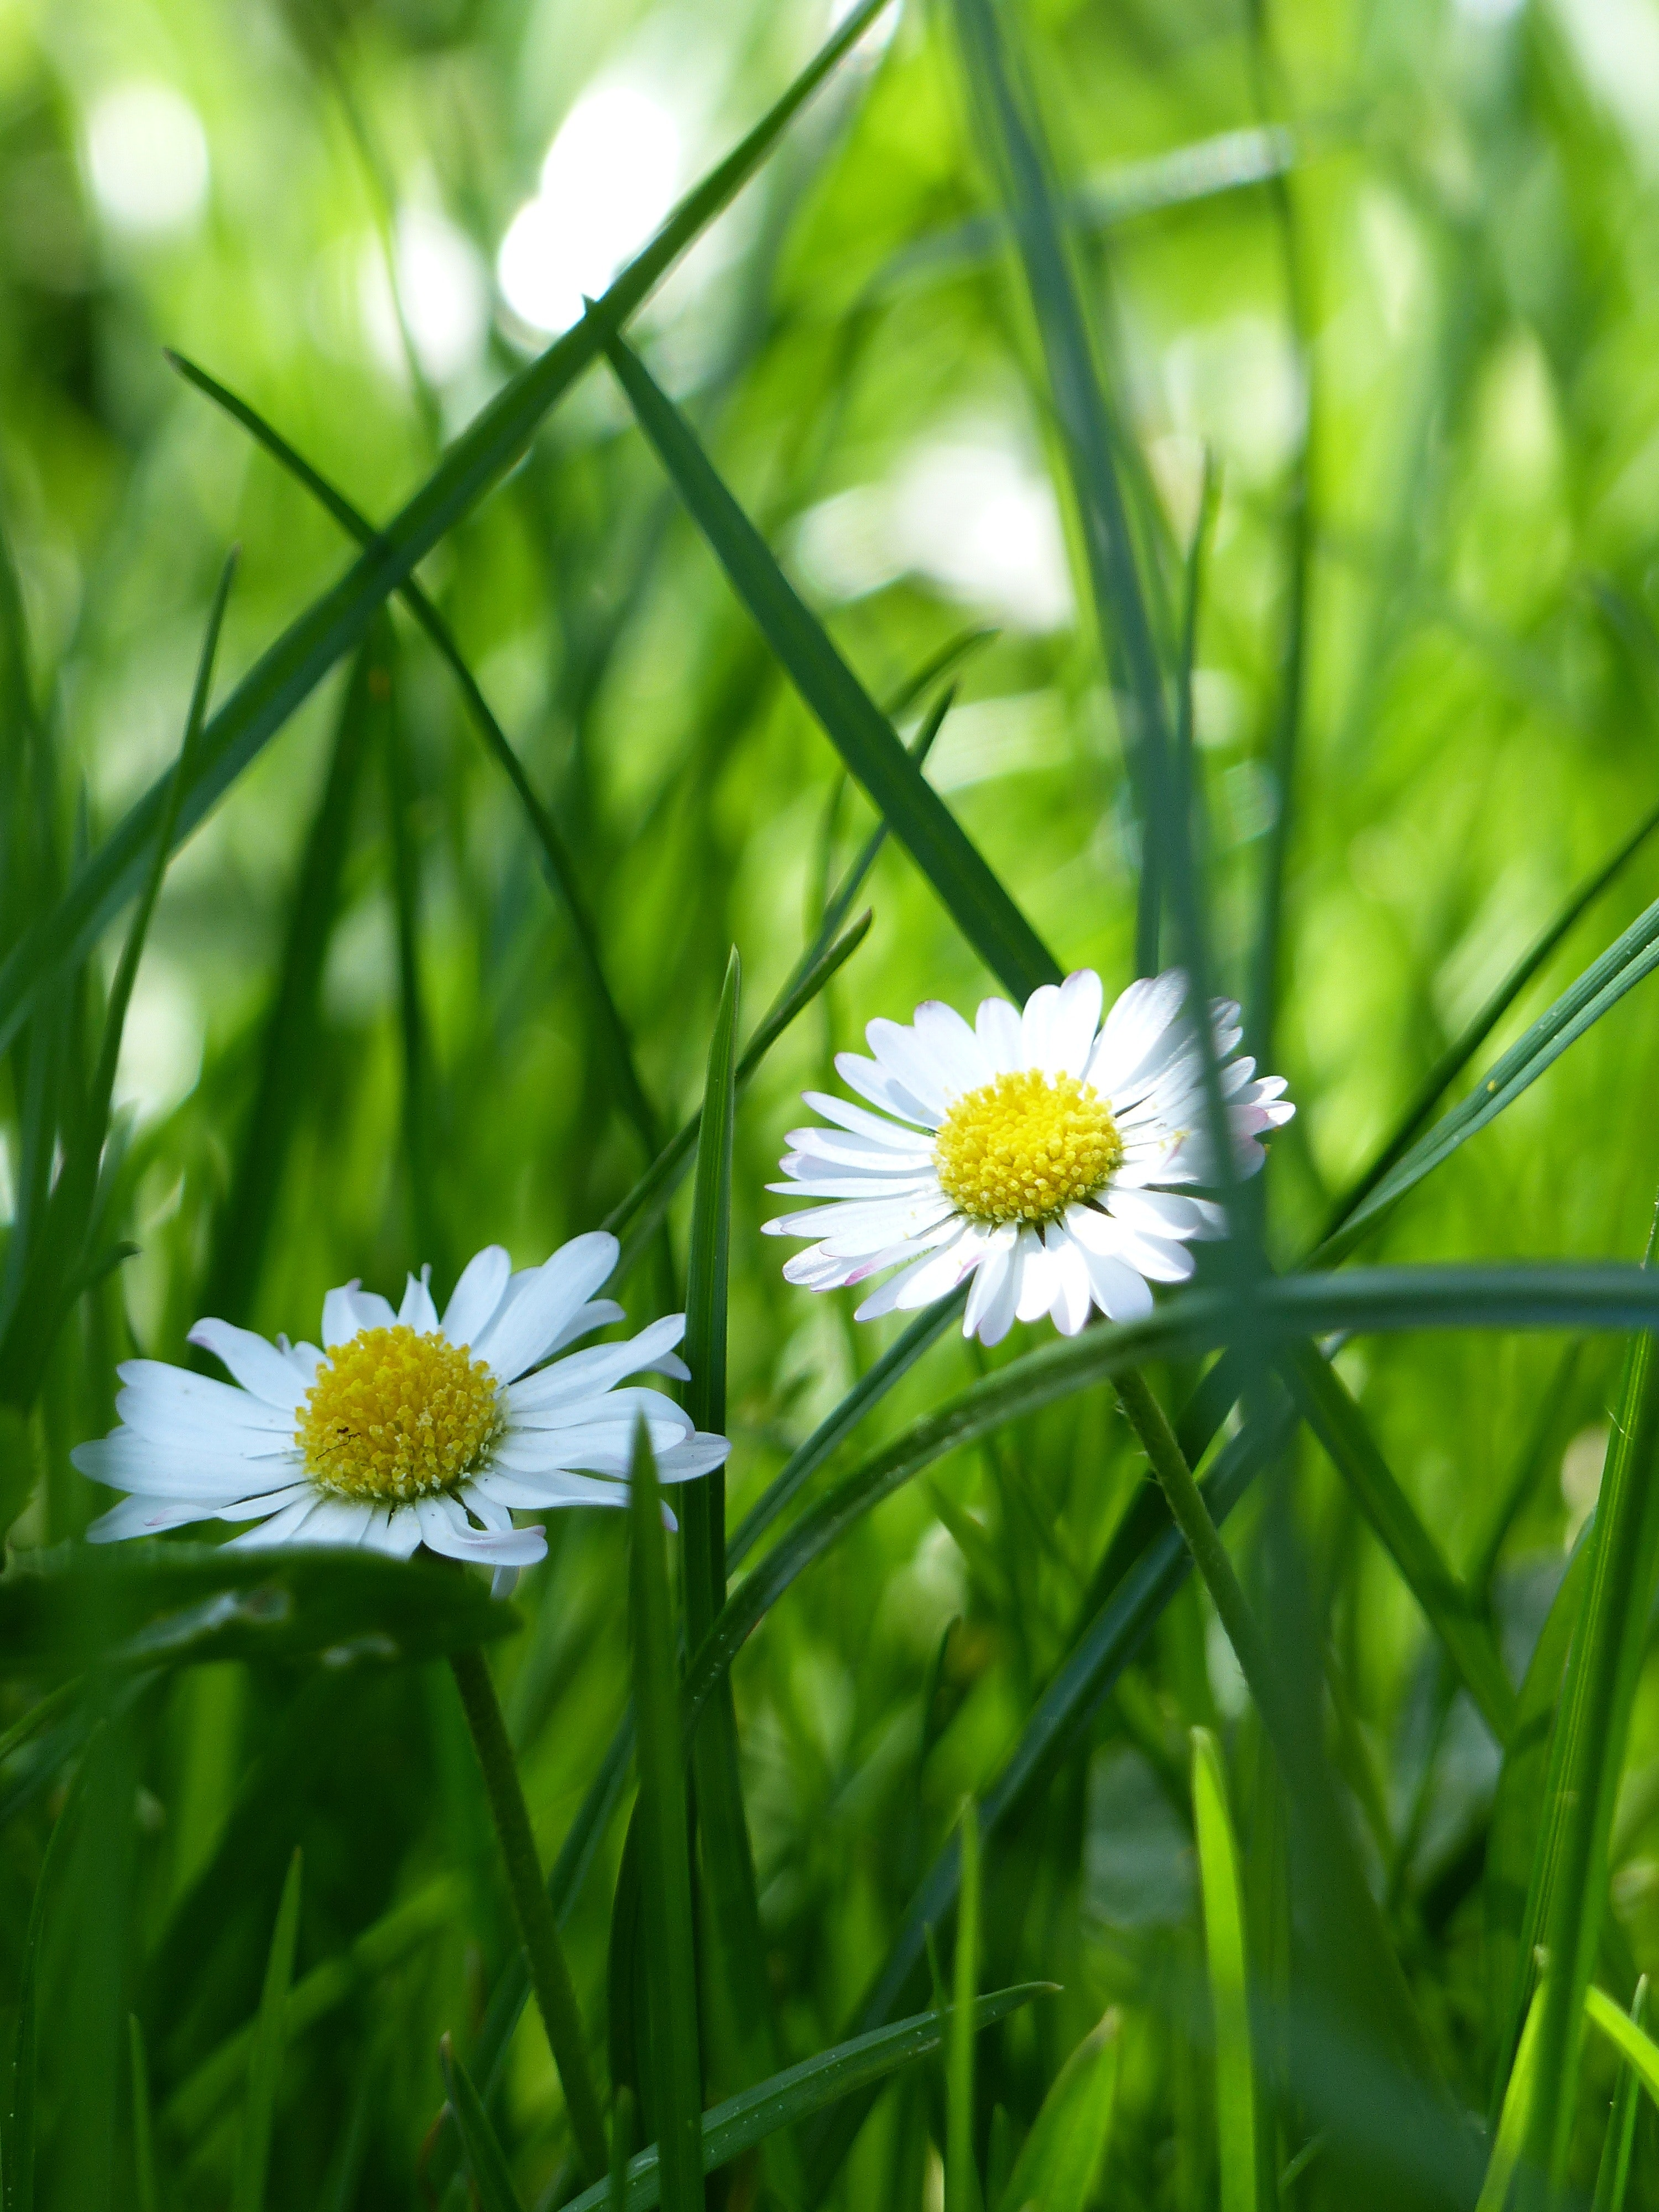 Yellow and white flower surrounded by green grass free stock photo free download mightylinksfo